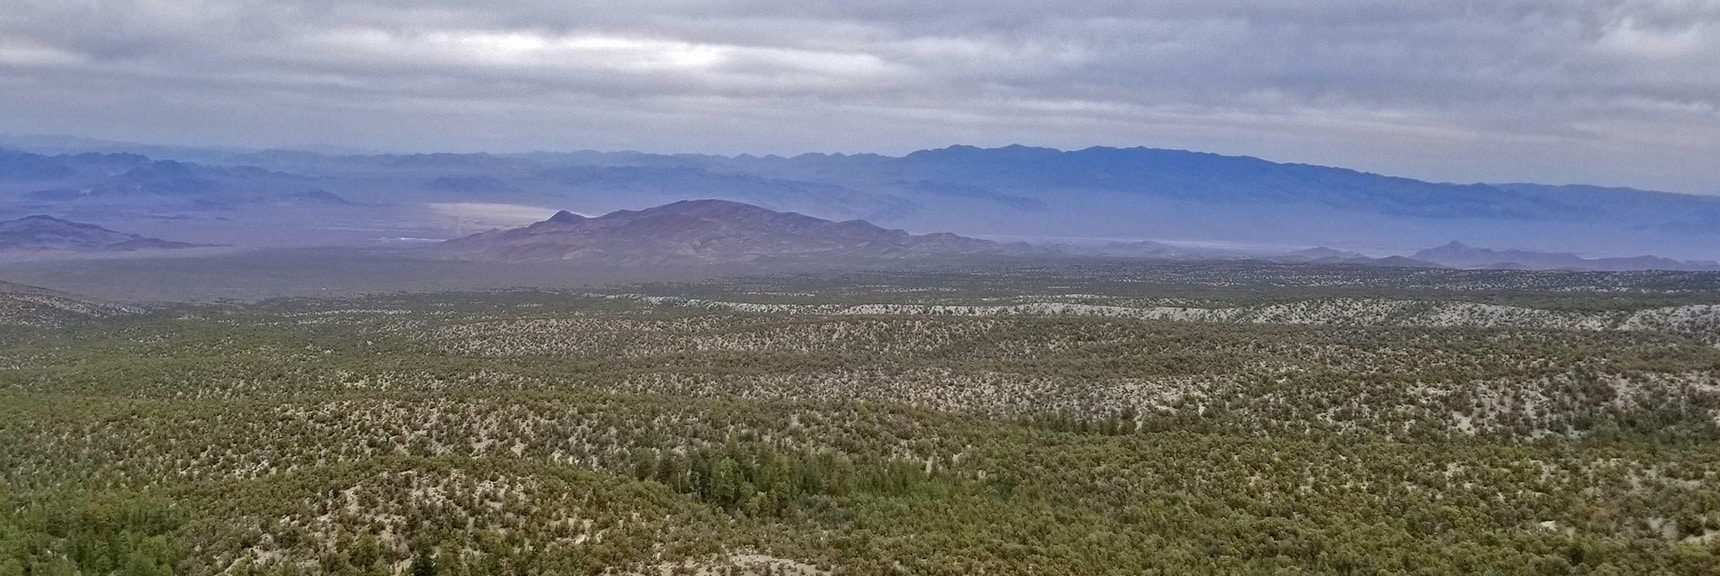 Hwy 95 Corridor Desert Valley Viewed from 9,235ft High Point Bluff   Sawmill Trail to McFarland Peak   Spring Mountains, Nevada